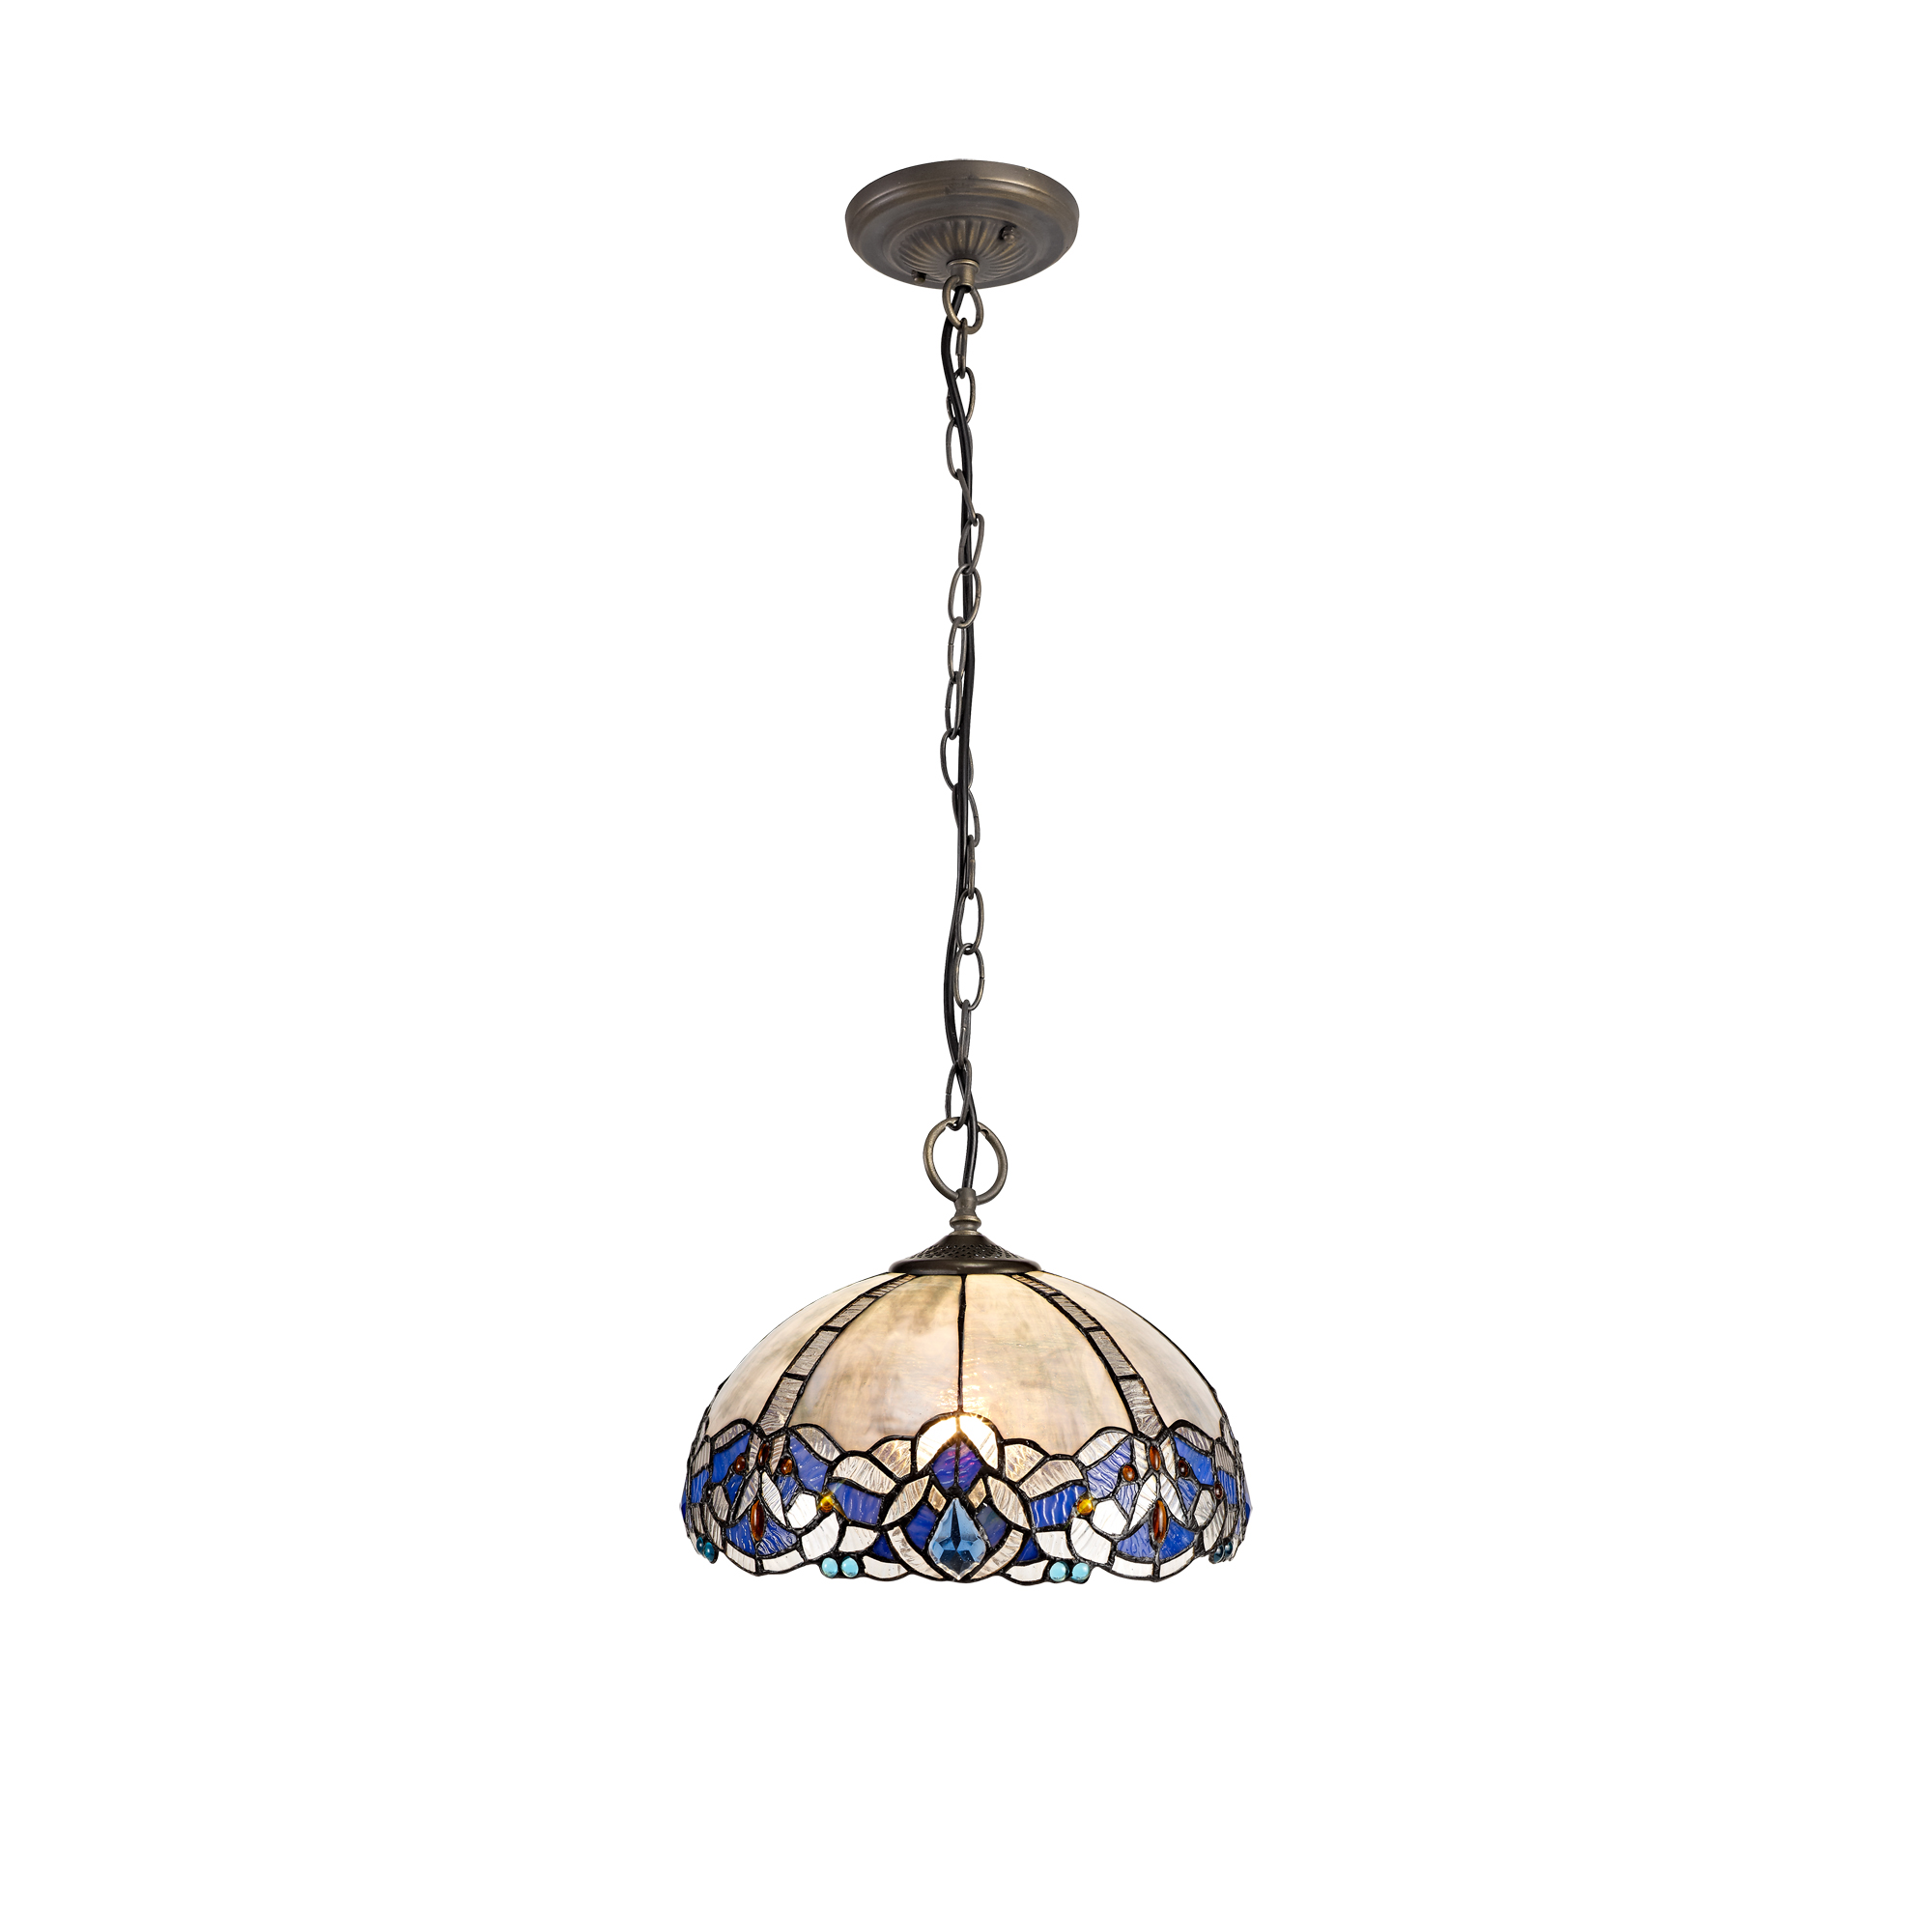 3 Light Downlight Pendant E27 With 30cm Tiffany Shade, Blue/Clear Crystal/Aged Antique Brass